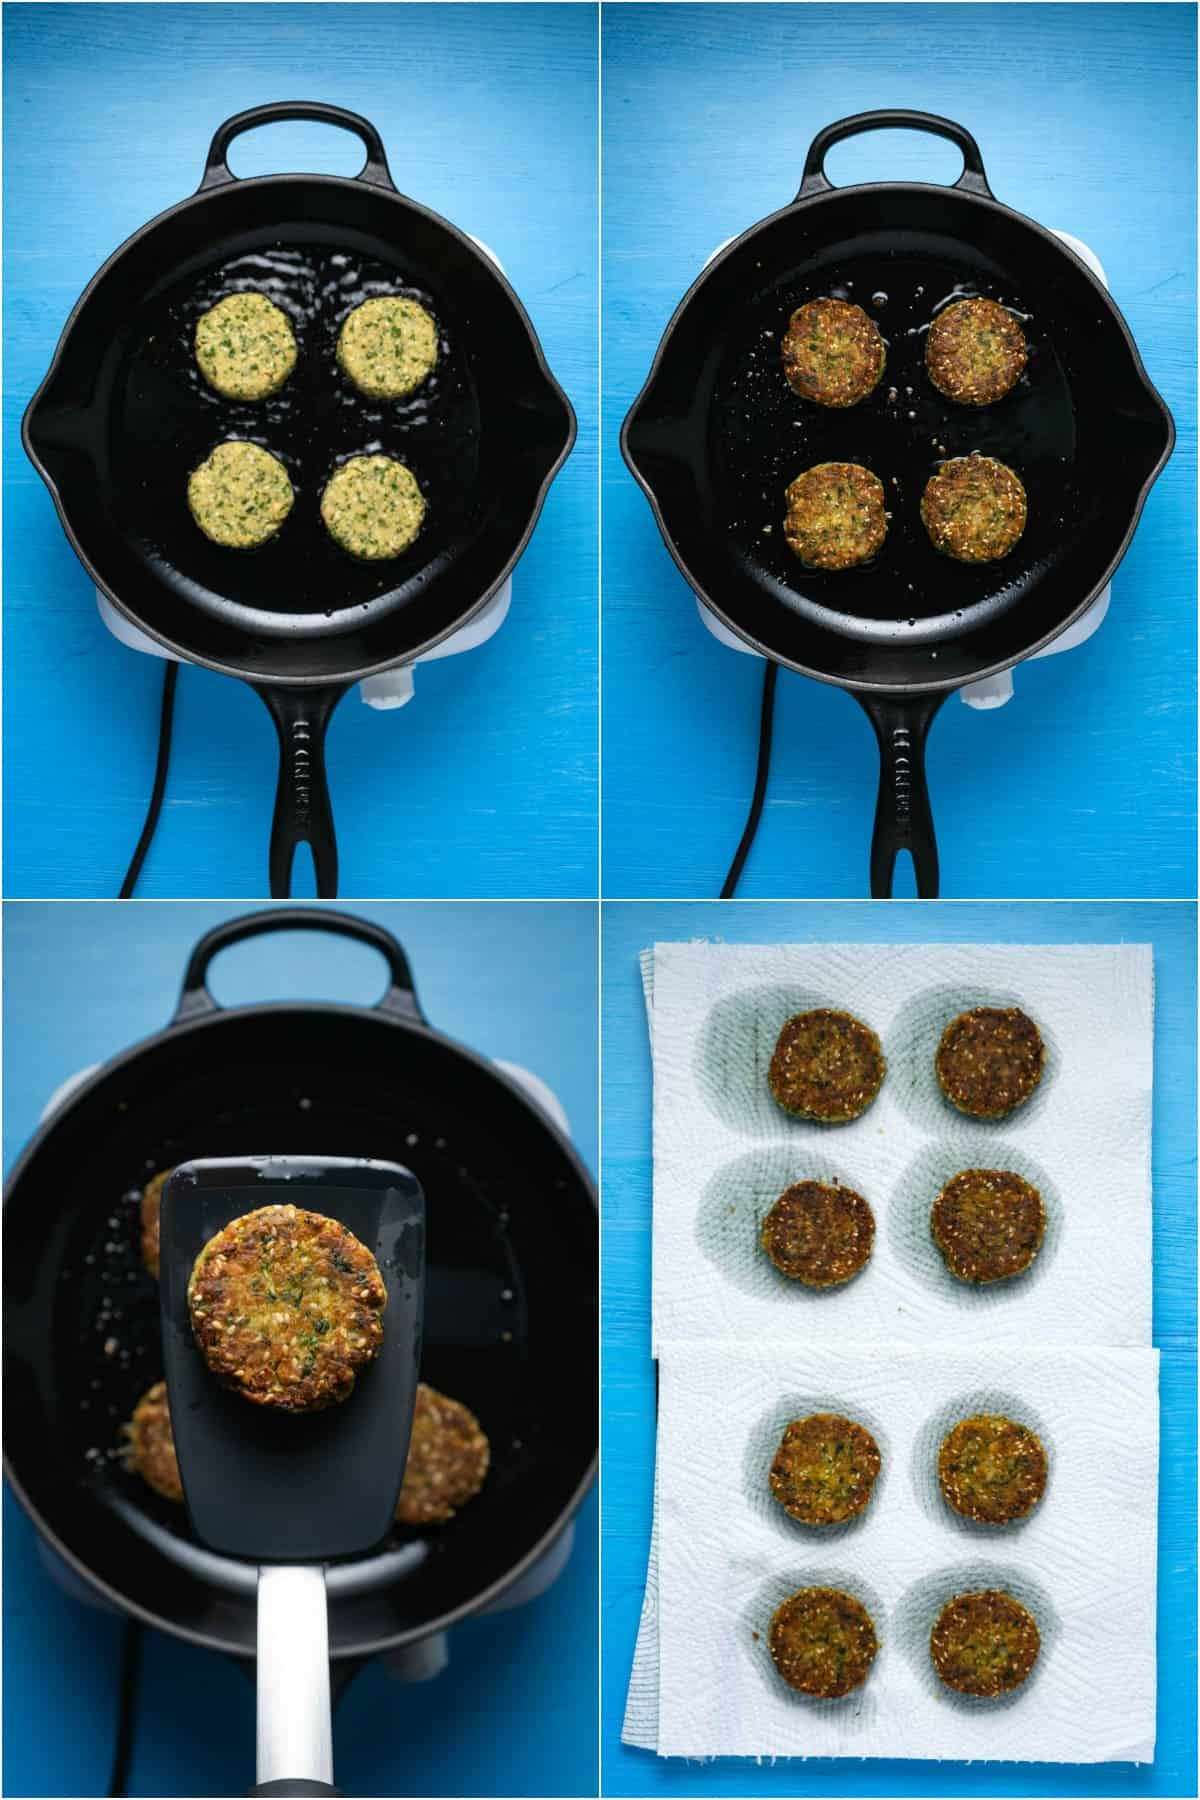 Step by step process photo collage of frying falafel.